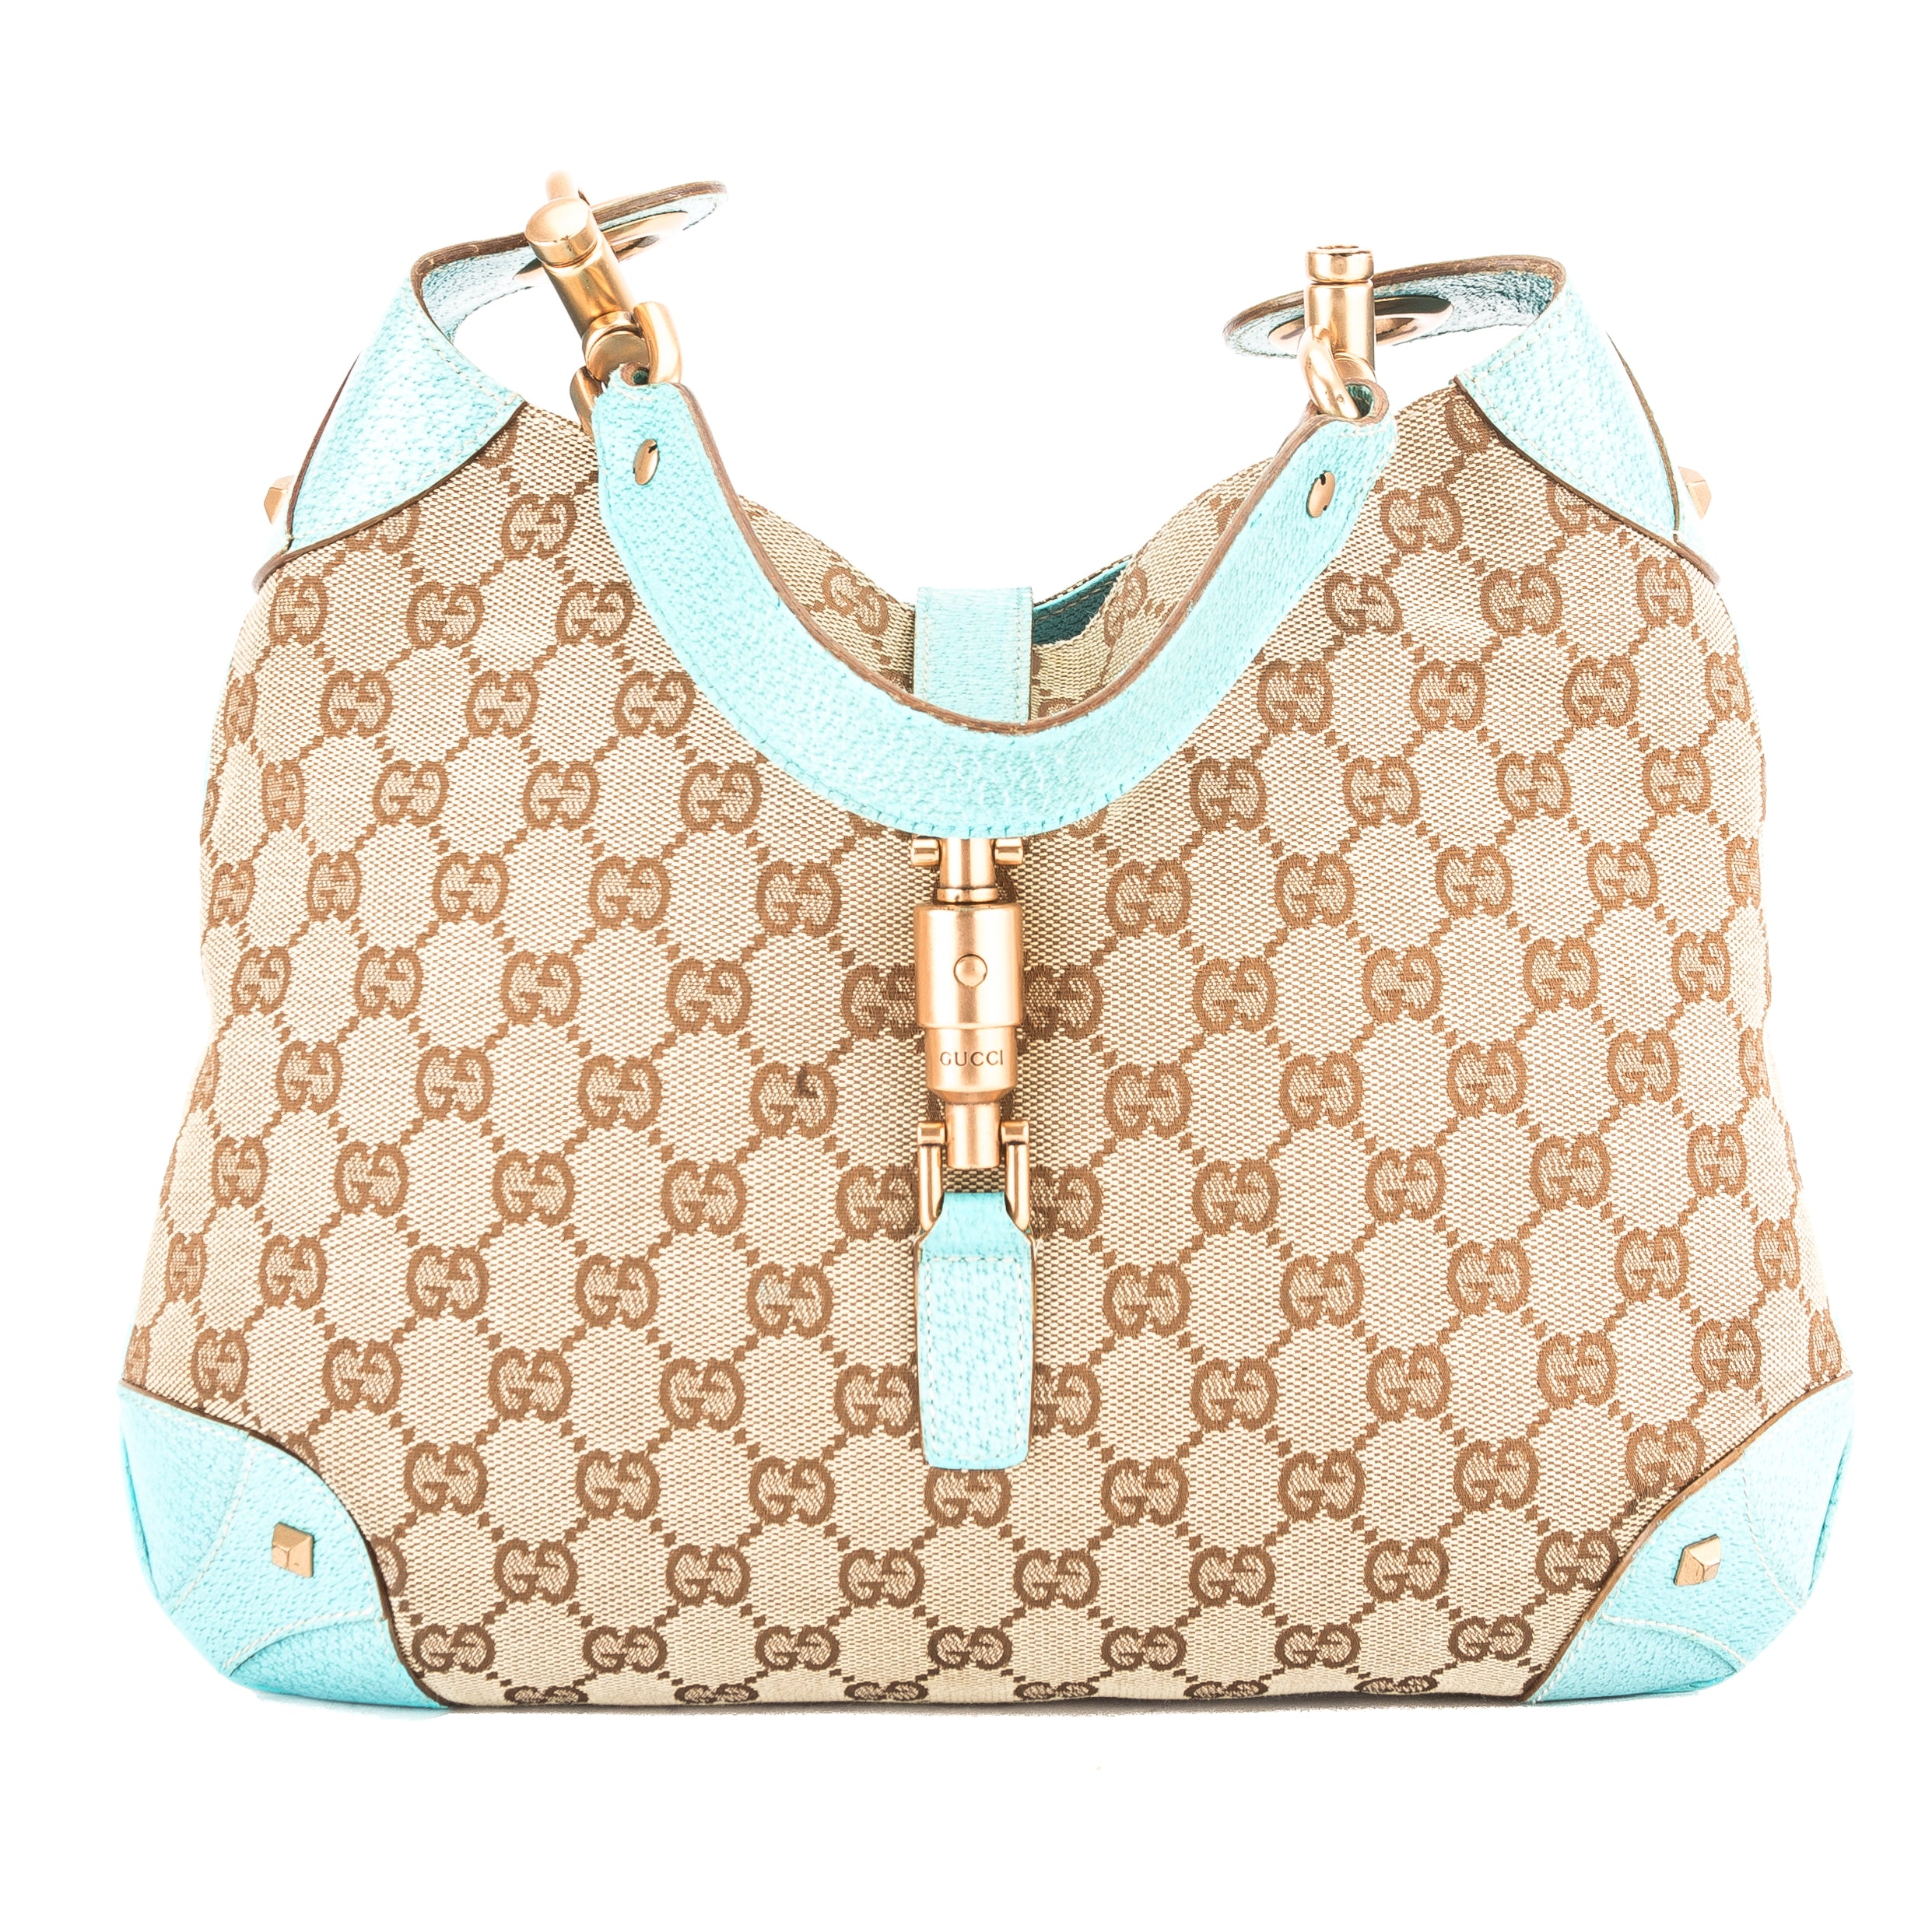 92e36c5f34a Gucci Turquoise Leather GG Monogram Canvas Jackie Hobo Bag Pre Owned